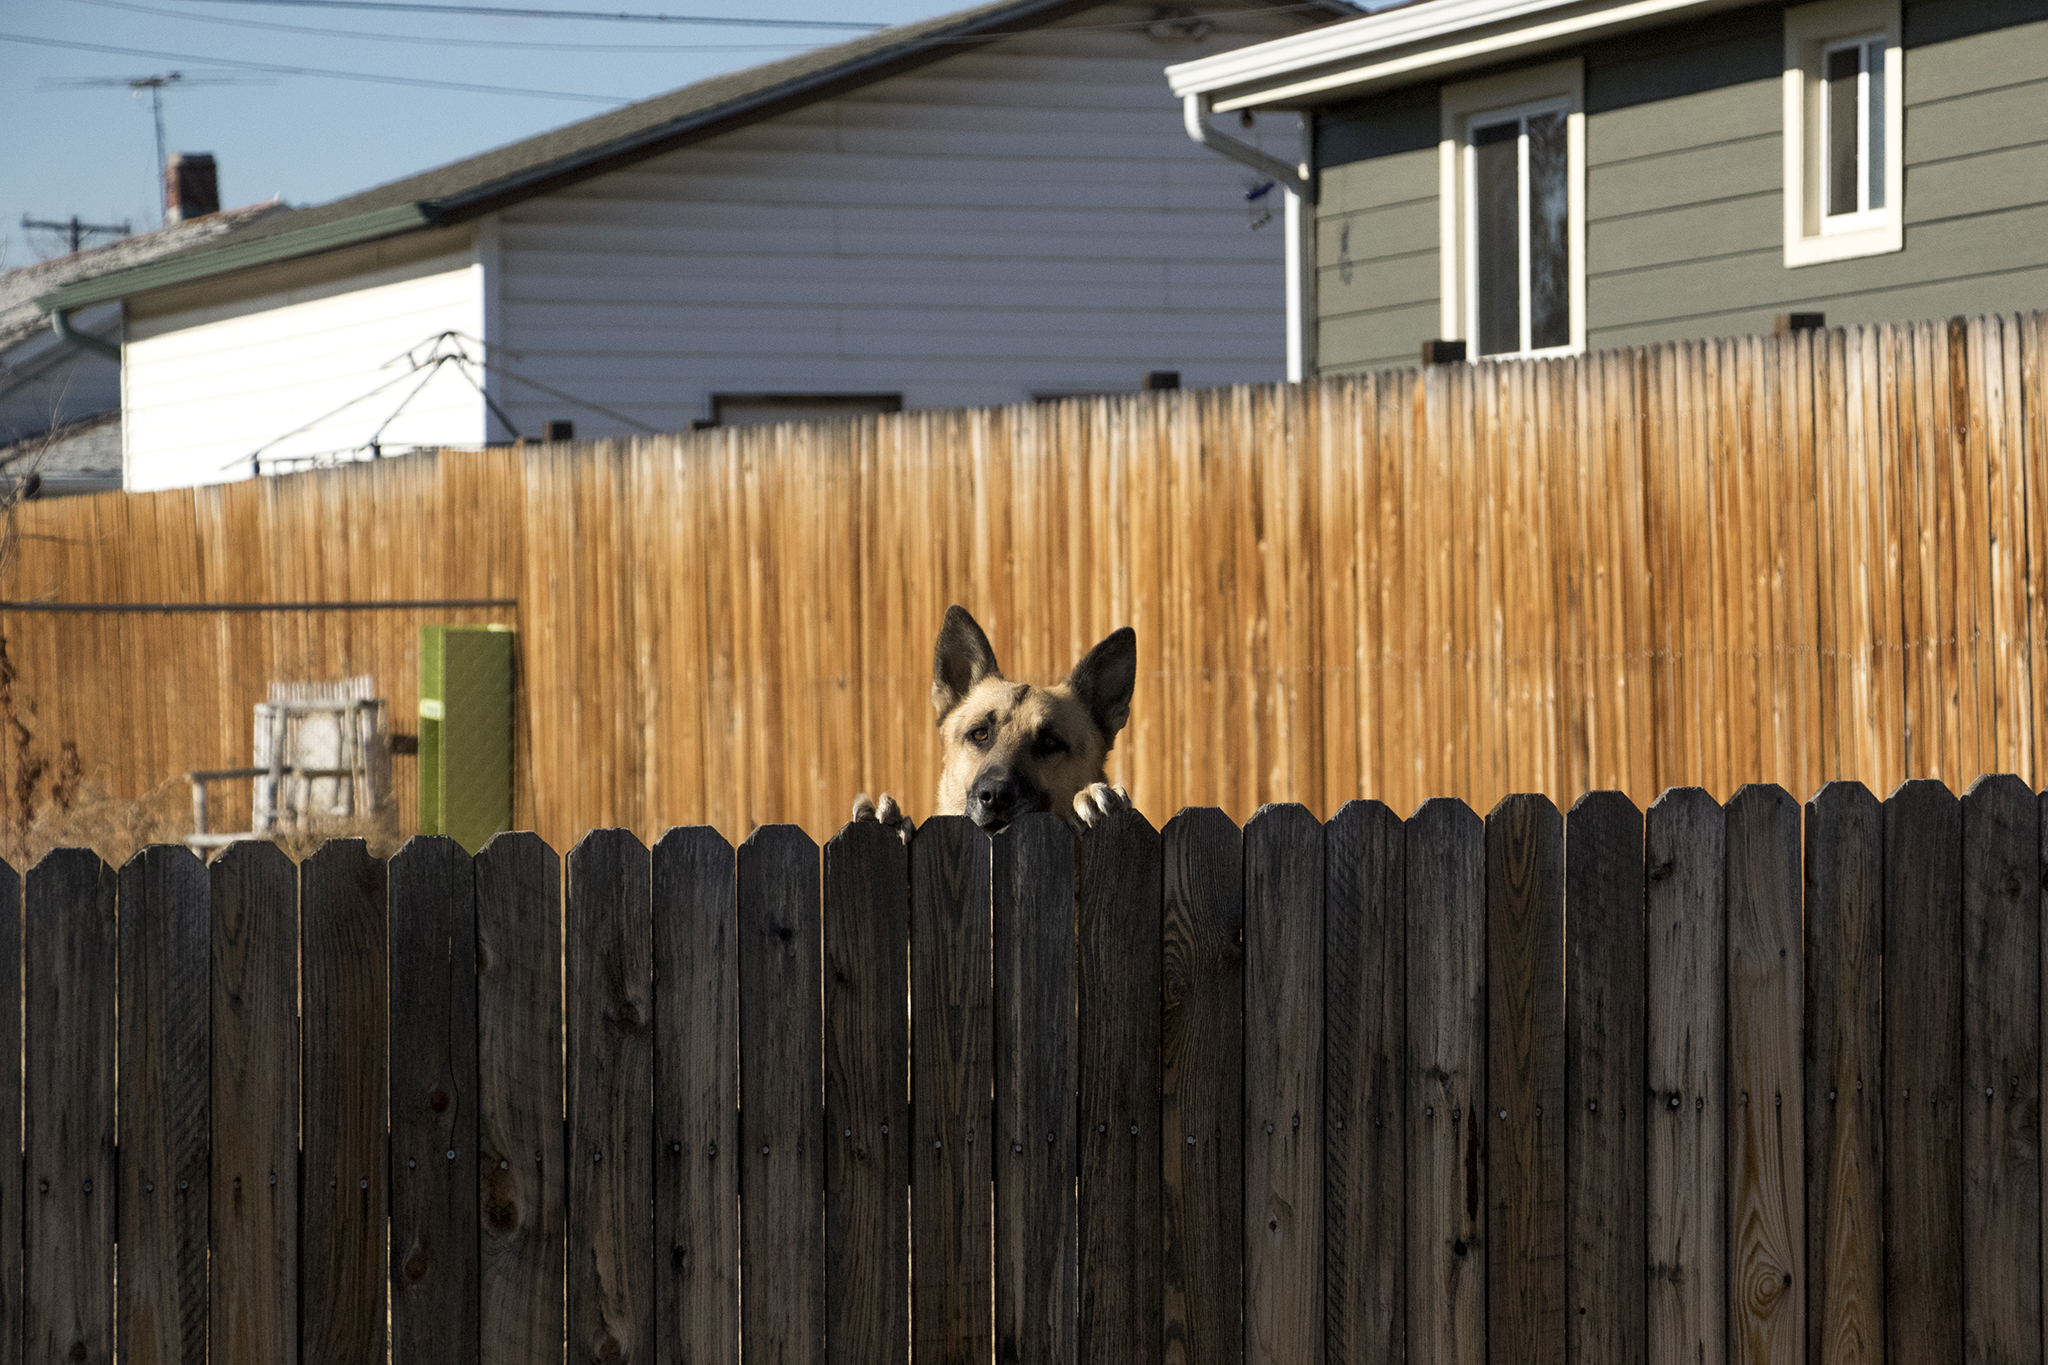 A dog peeks over the fence in Globeville, Nov. 29, 2018.